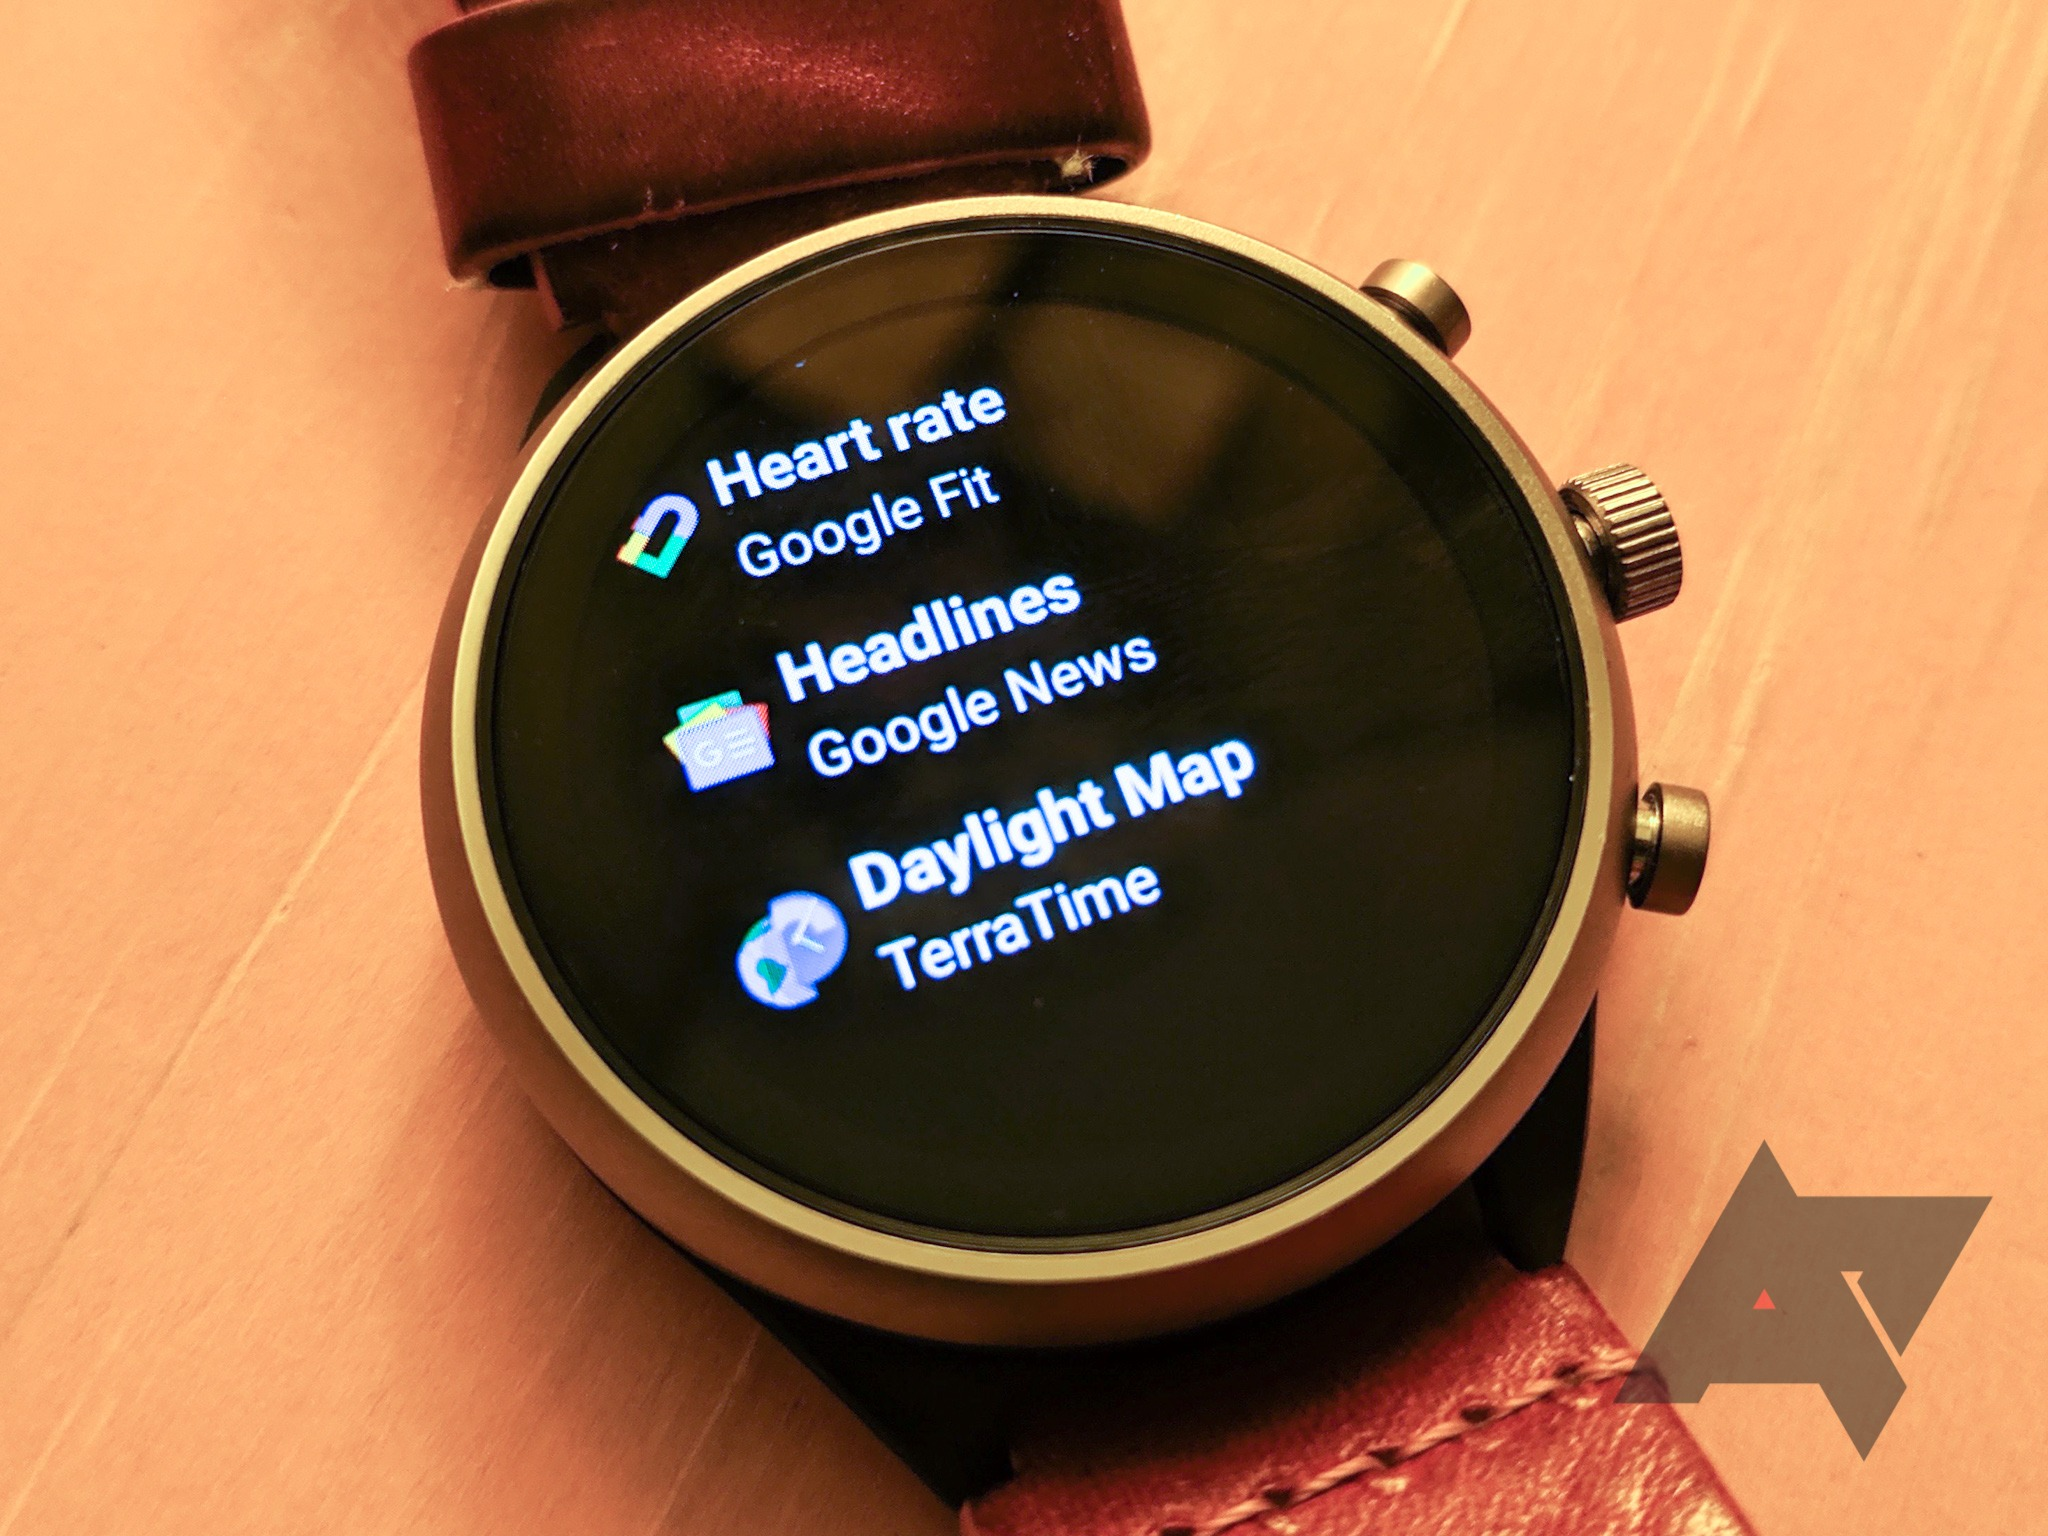 Unofficial library brings Wear OS Tiles to third-party apps